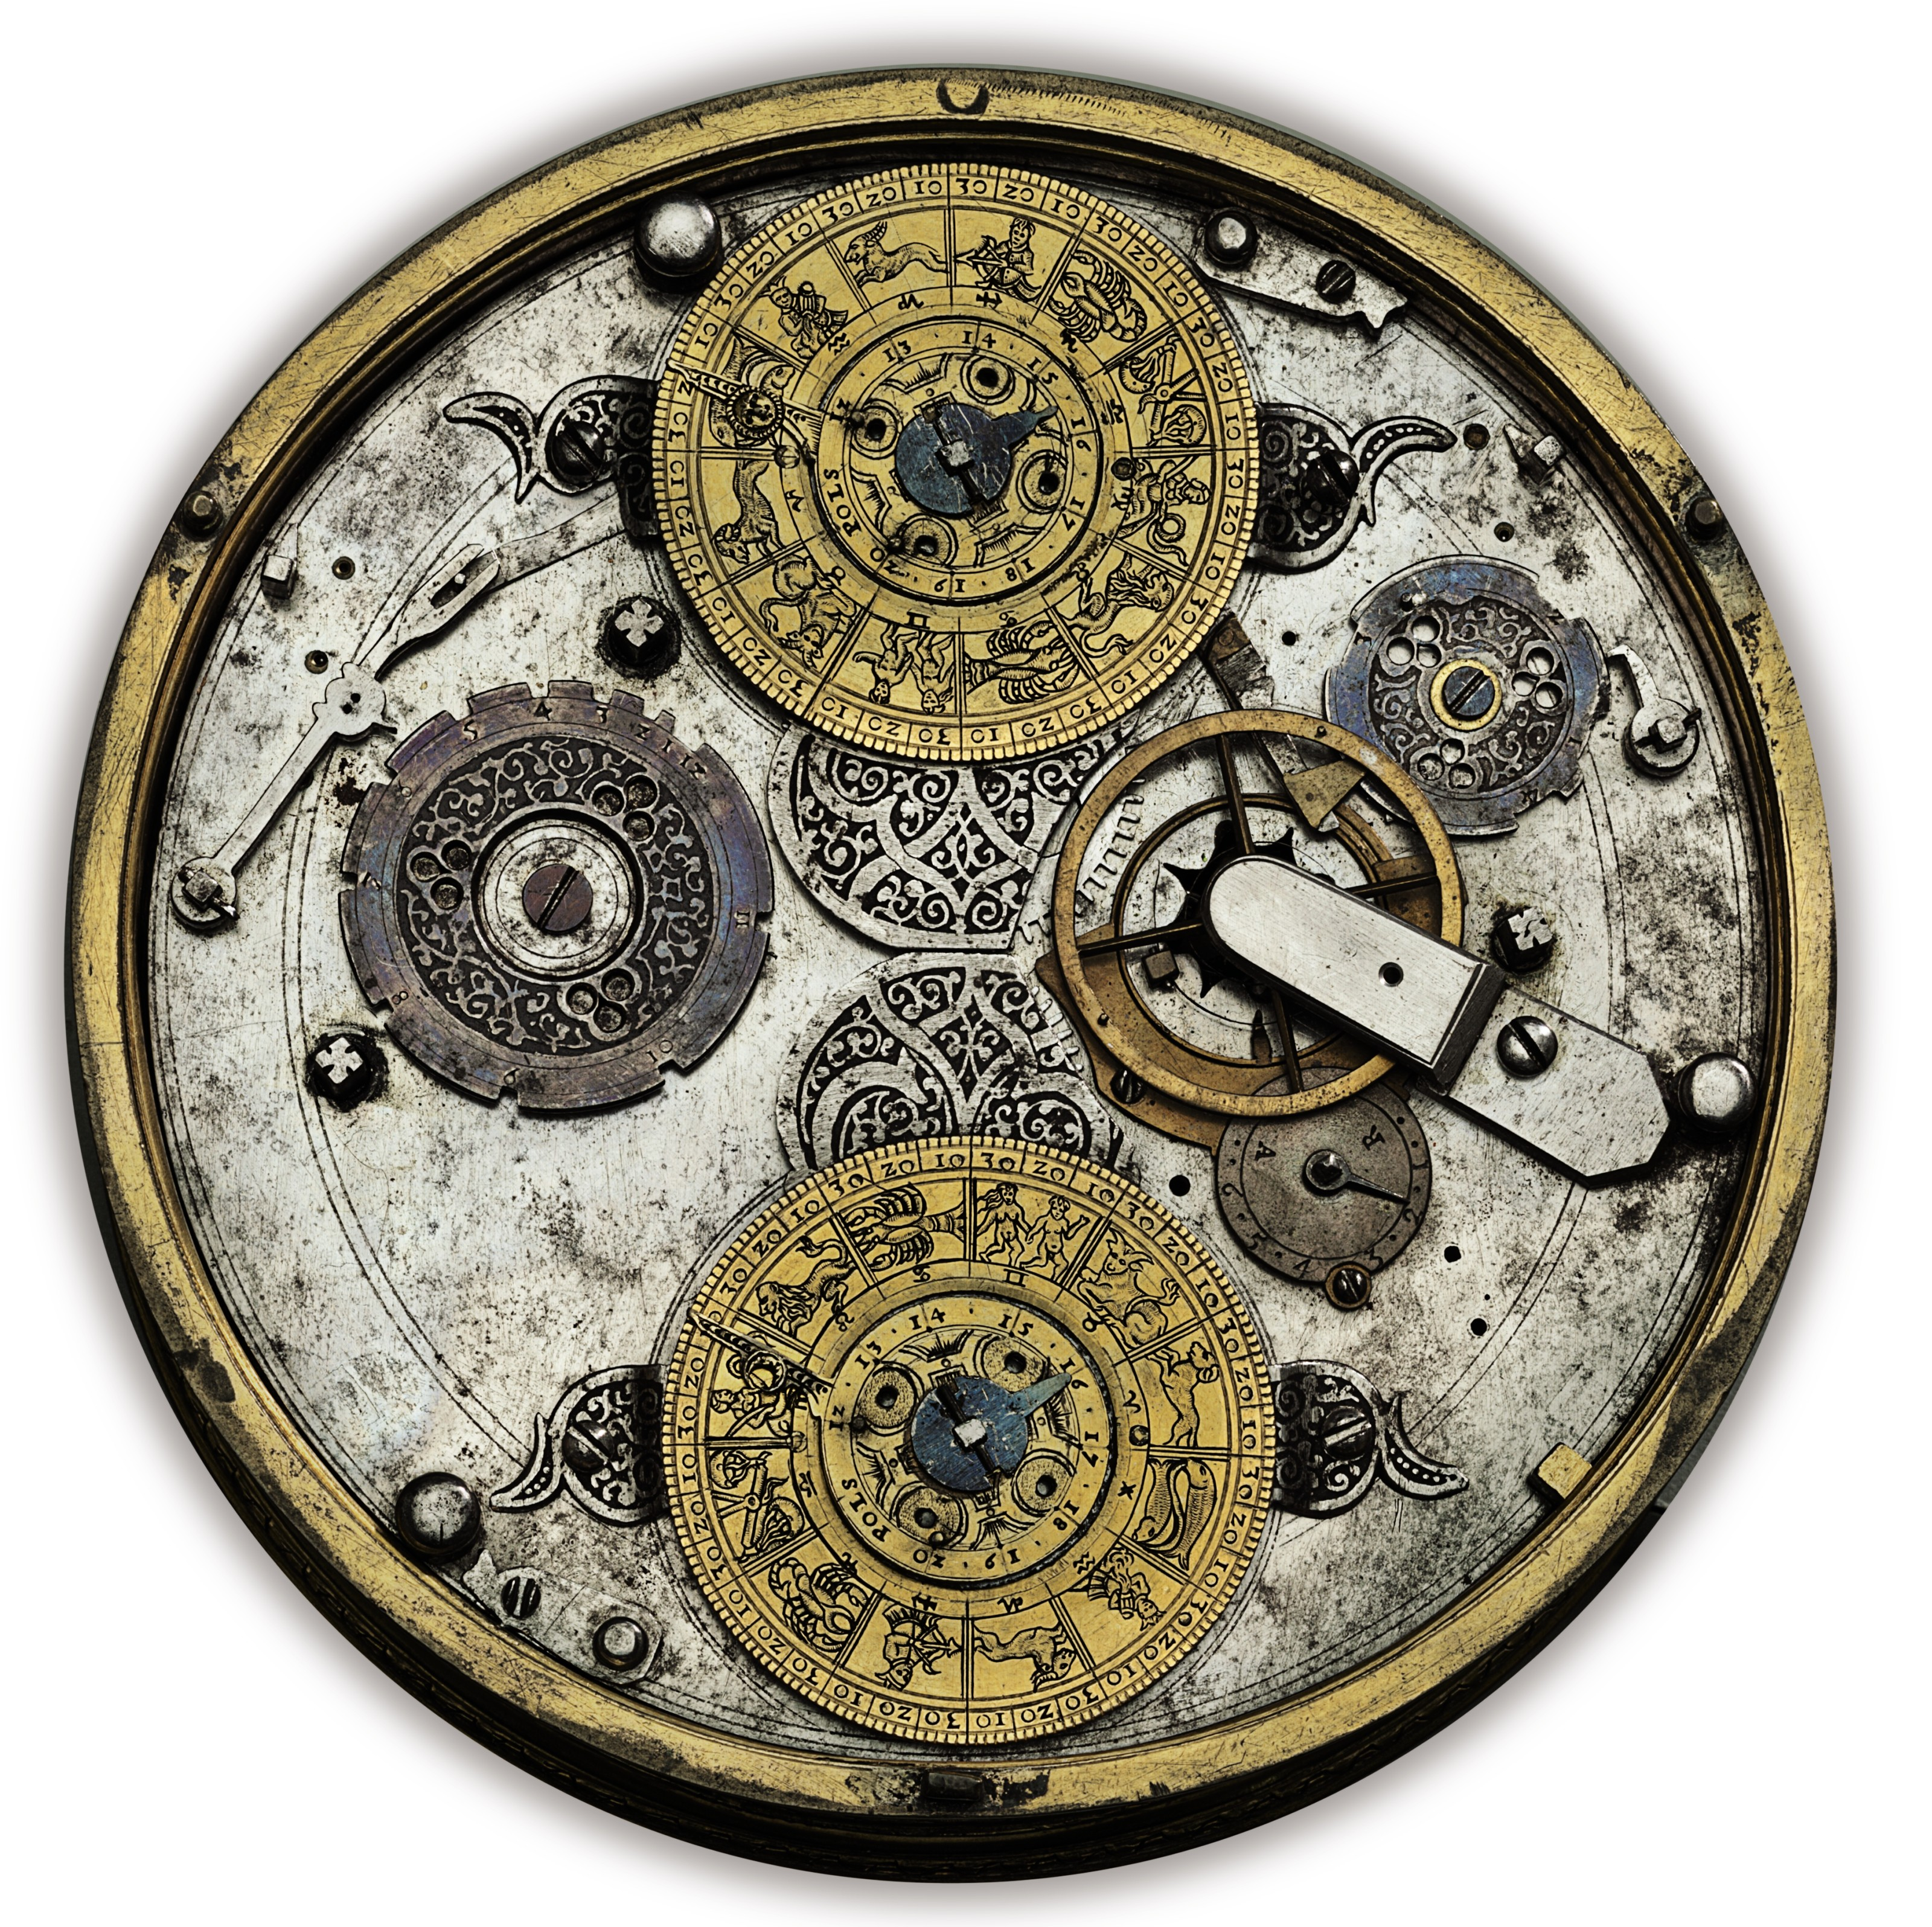 A GERMAN GILT-BRASS STRIKING AND ASTRONOMICAL TABLE CLOCK